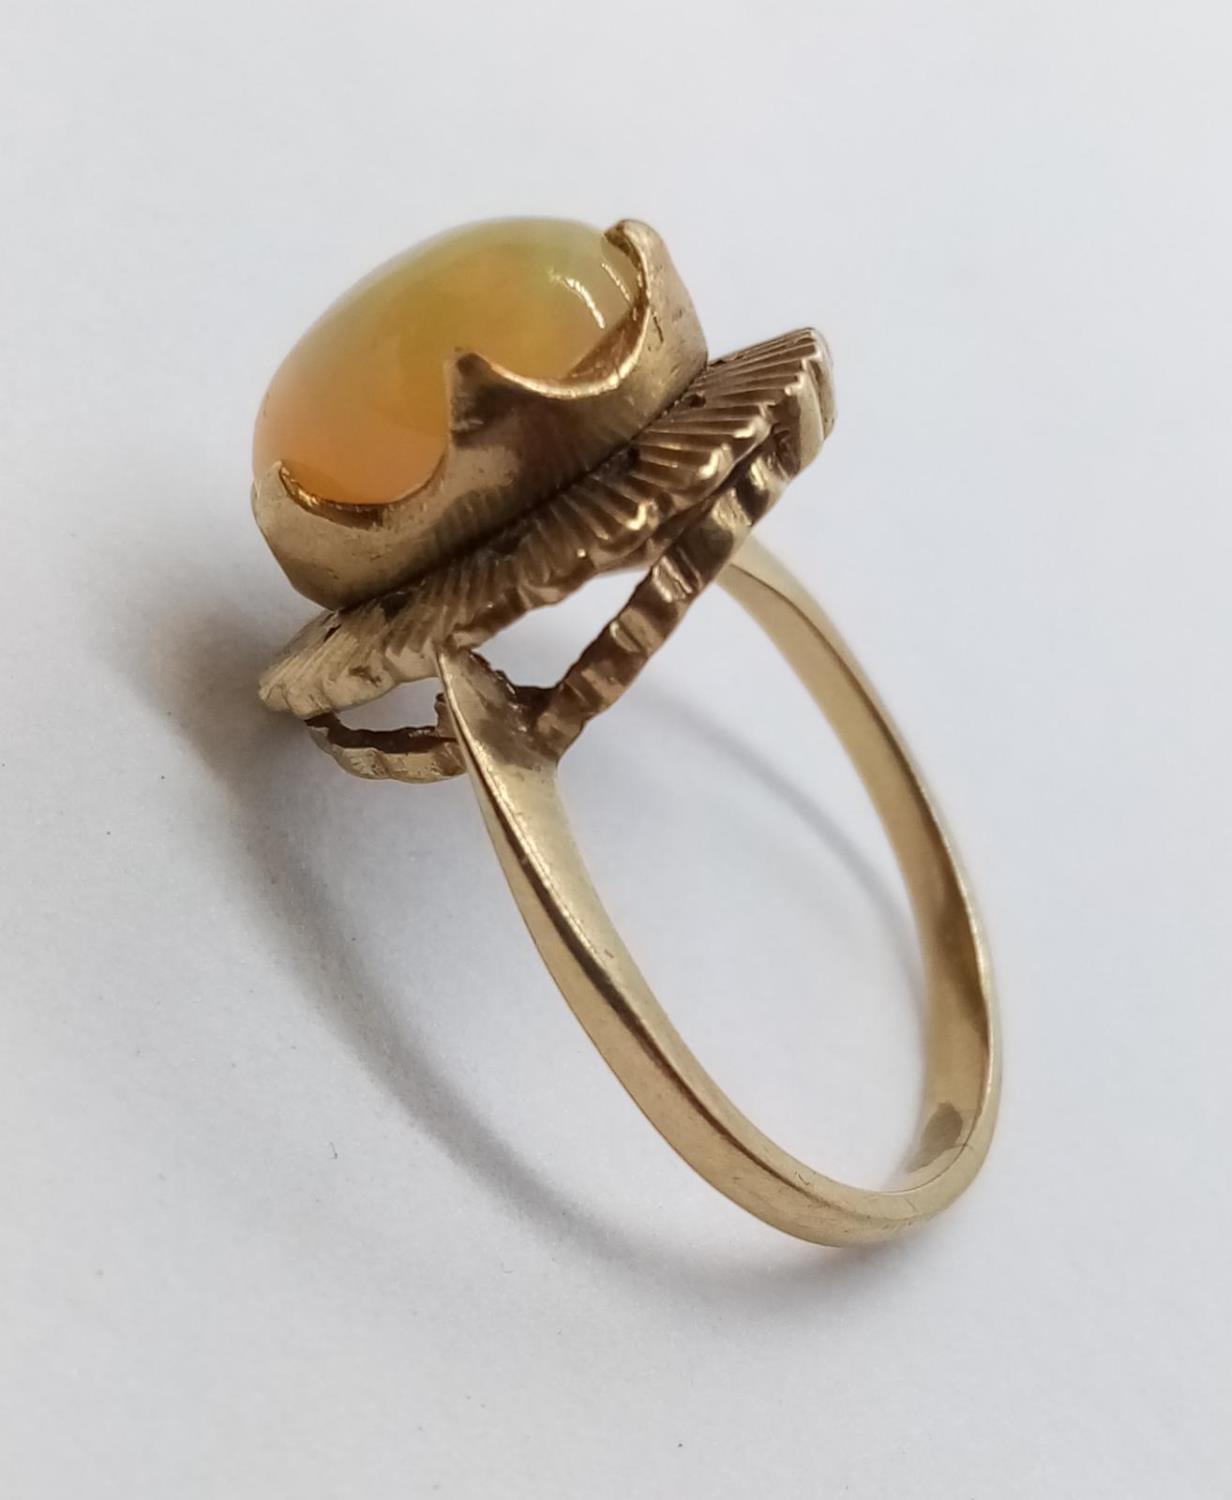 Fine Opal set in 9 cg Gold RING. 3.0g Size M. - Image 3 of 6